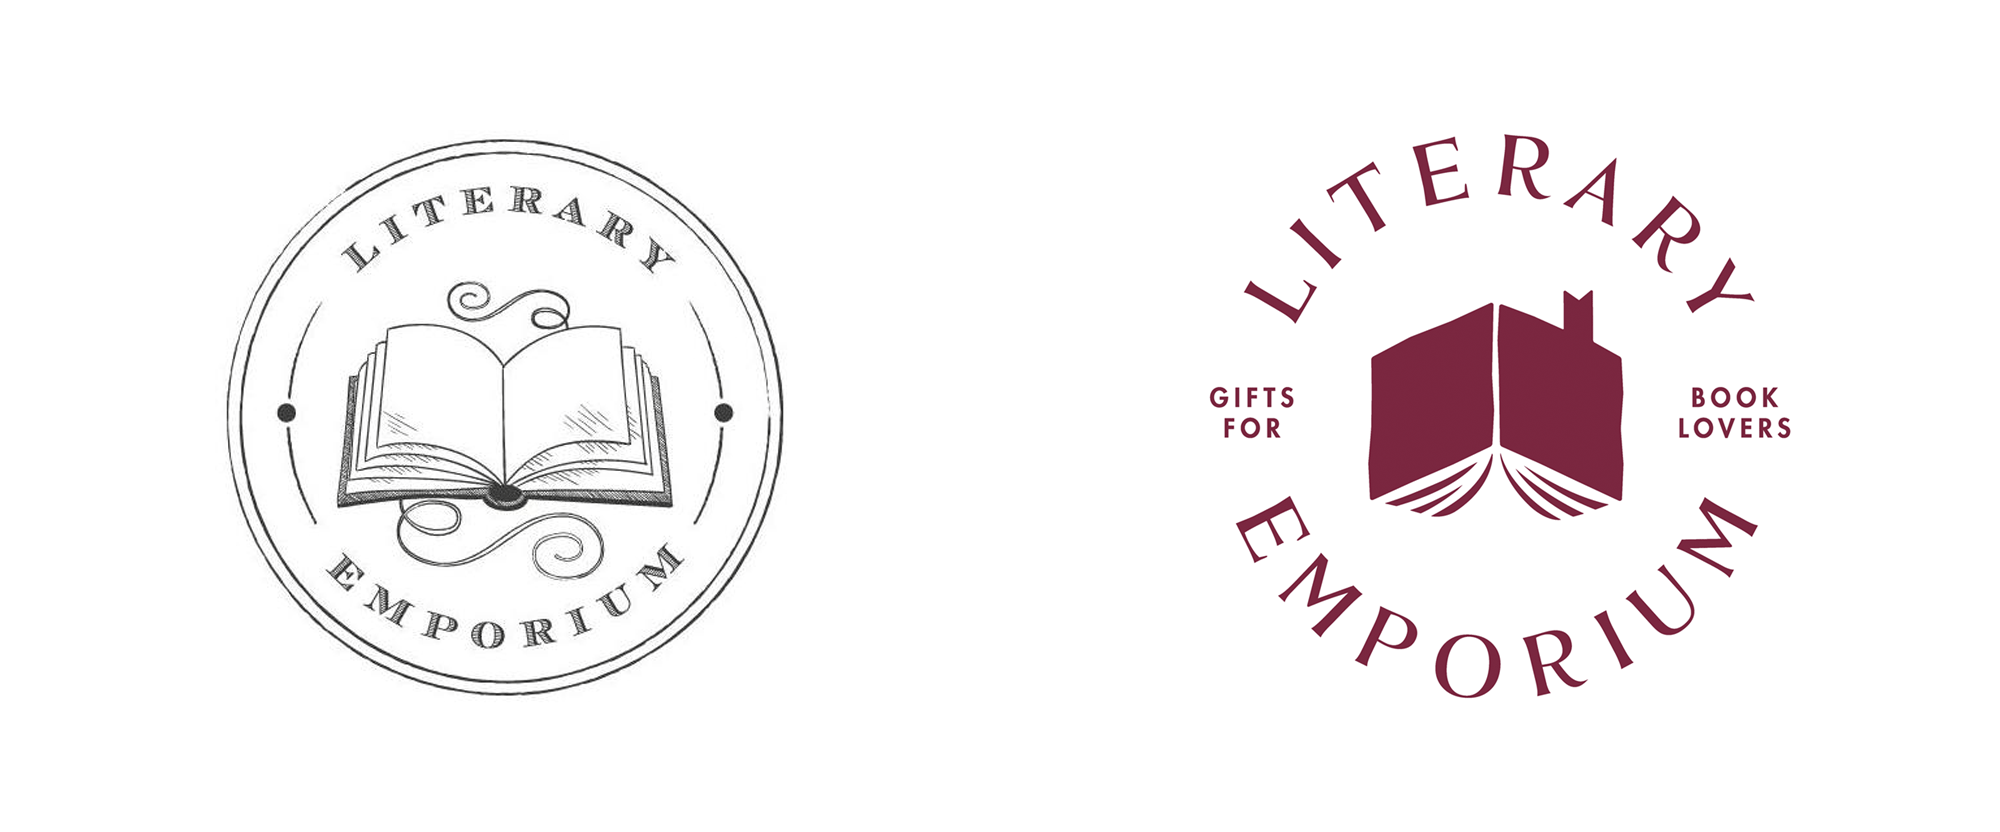 New Logo and Identity for Literary Emporium by Fiasco Design